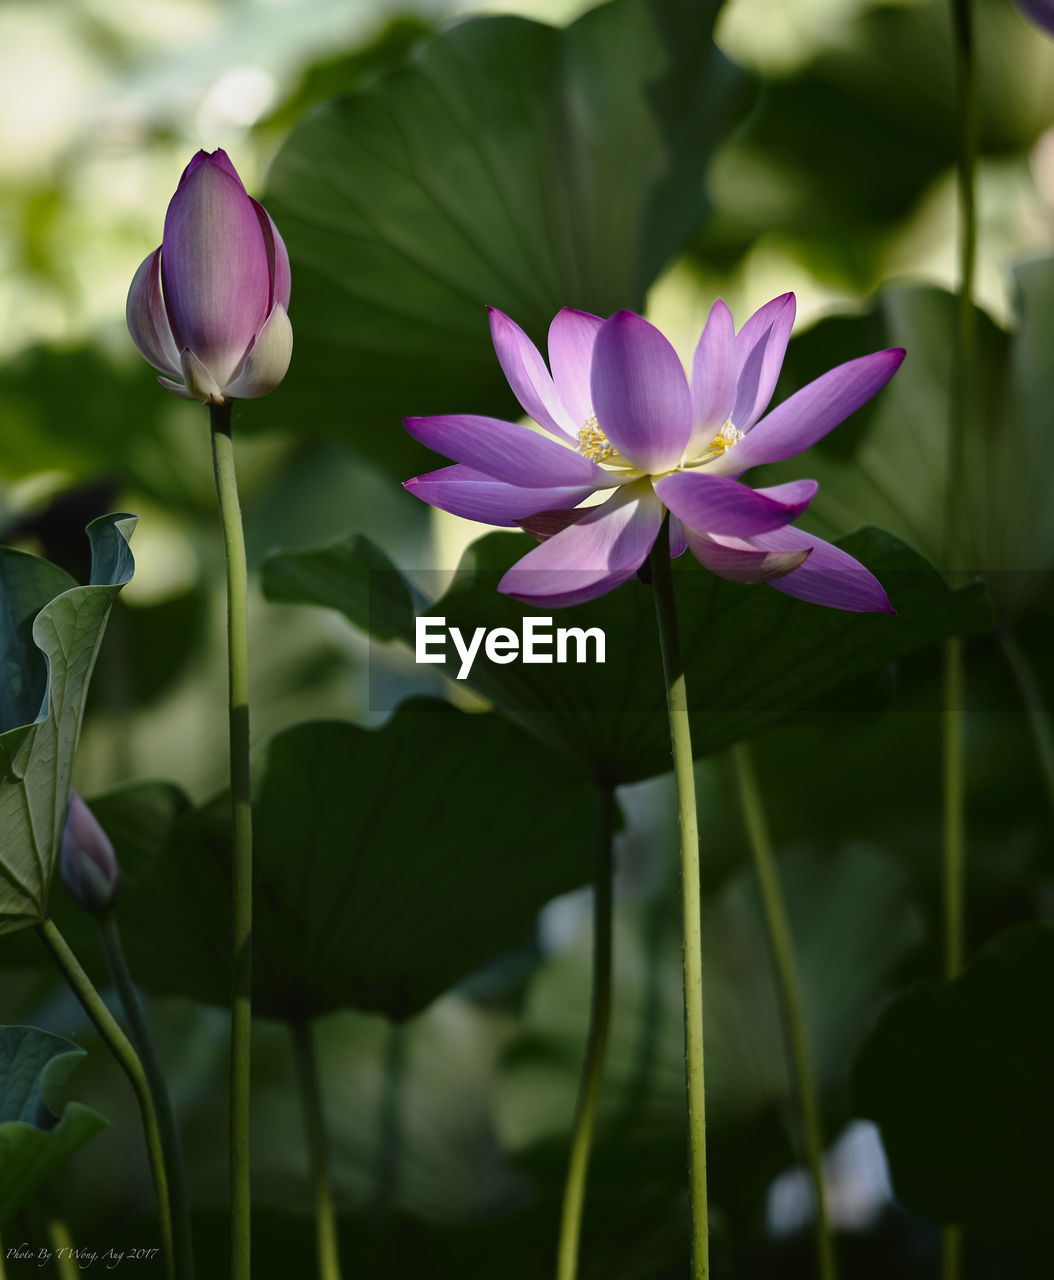 flower, petal, beauty in nature, fragility, nature, growth, freshness, purple, plant, flower head, outdoors, leaf, day, blooming, no people, focus on foreground, pink color, close-up, lotus water lily, crocus